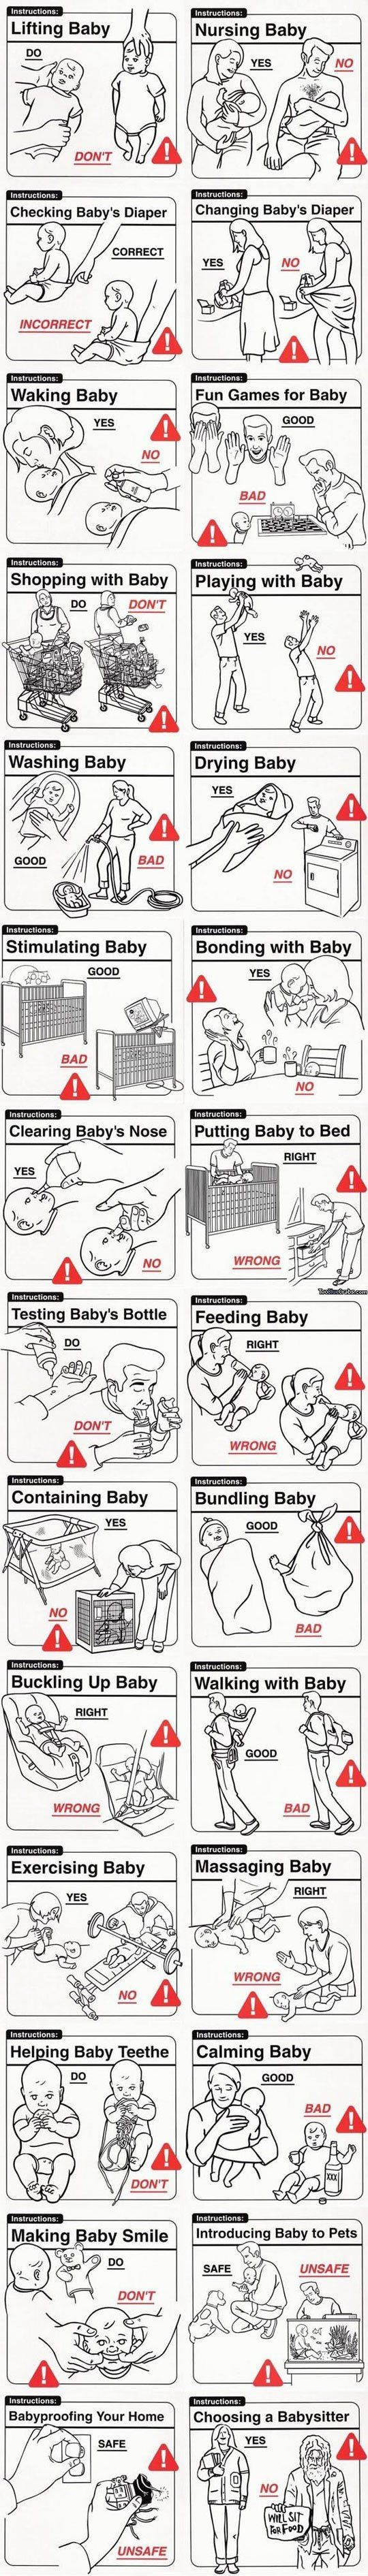 Baby Instructions 101 i could make this into a booklet and give it as a gag gift for mothers to be love it